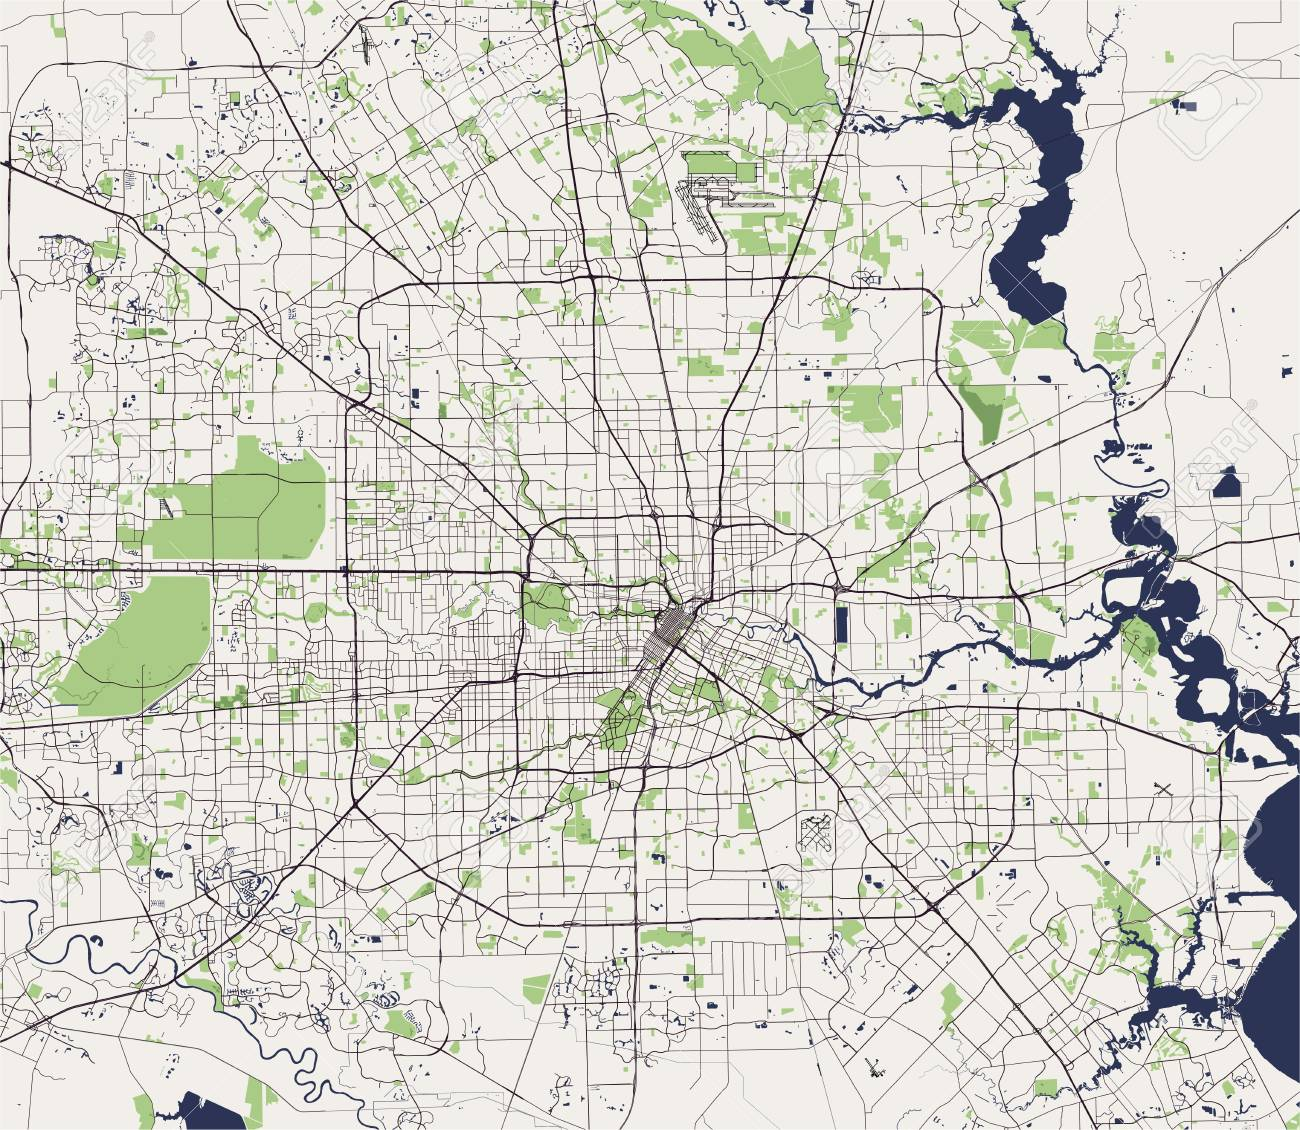 Map Of The City Of Houston U S State Of Texas Usa Royalty Free